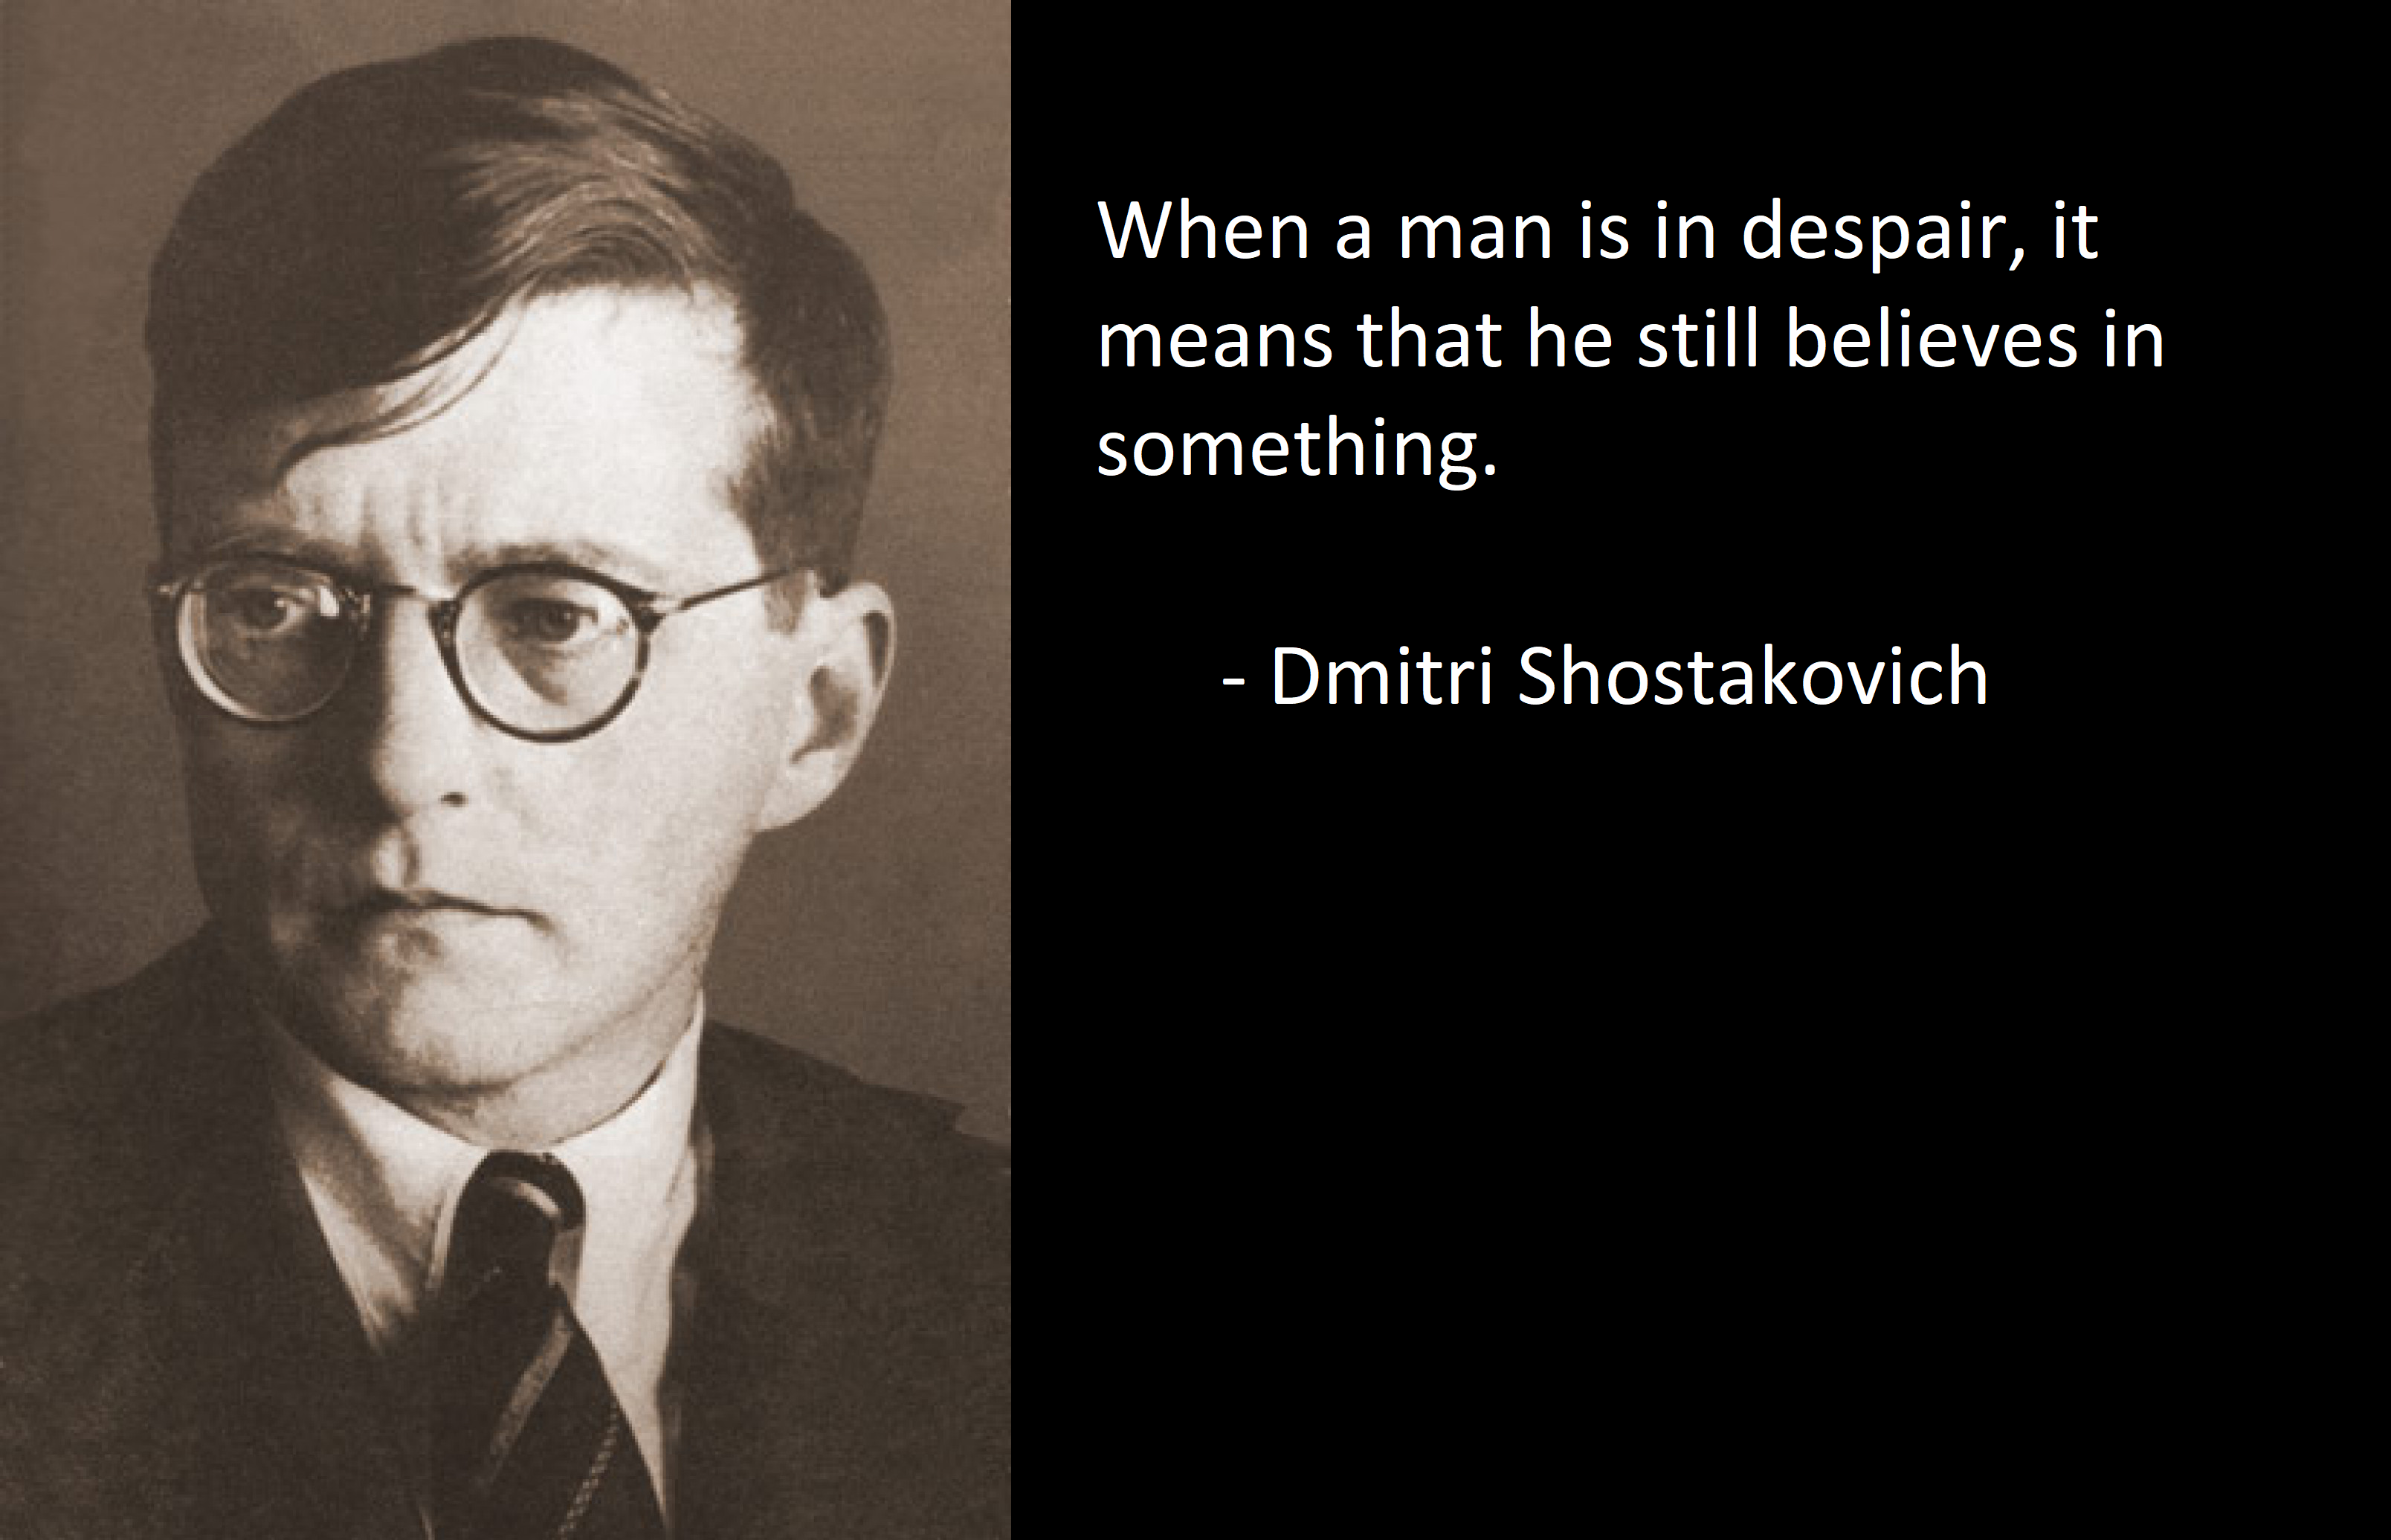 """When a man is in despair, it means that he still believes in something.""- Dmitri Shostakovich [3216×2072]"